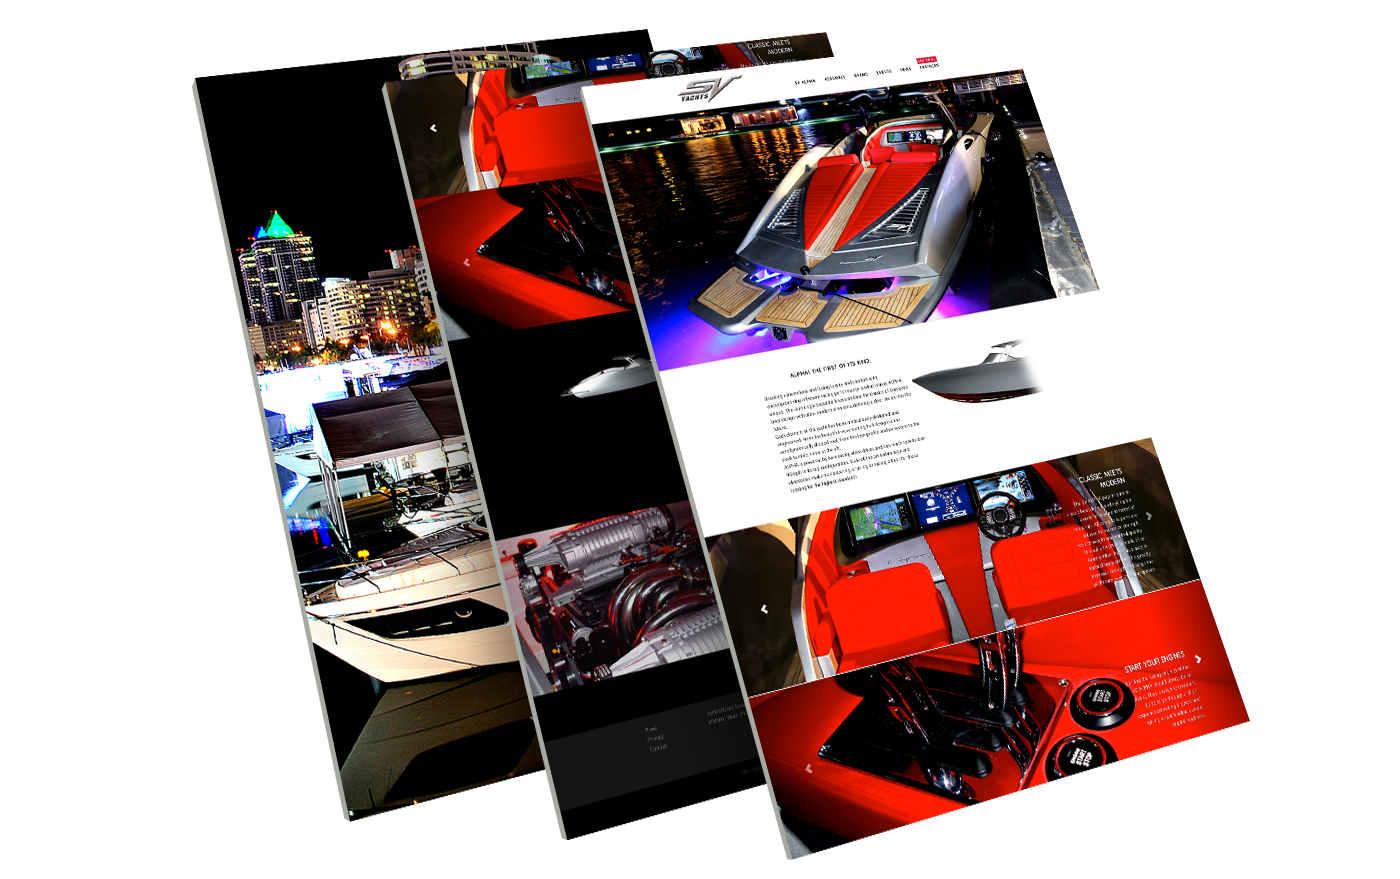 SVYachts_Web_Screens_IsabelCastroNet.png